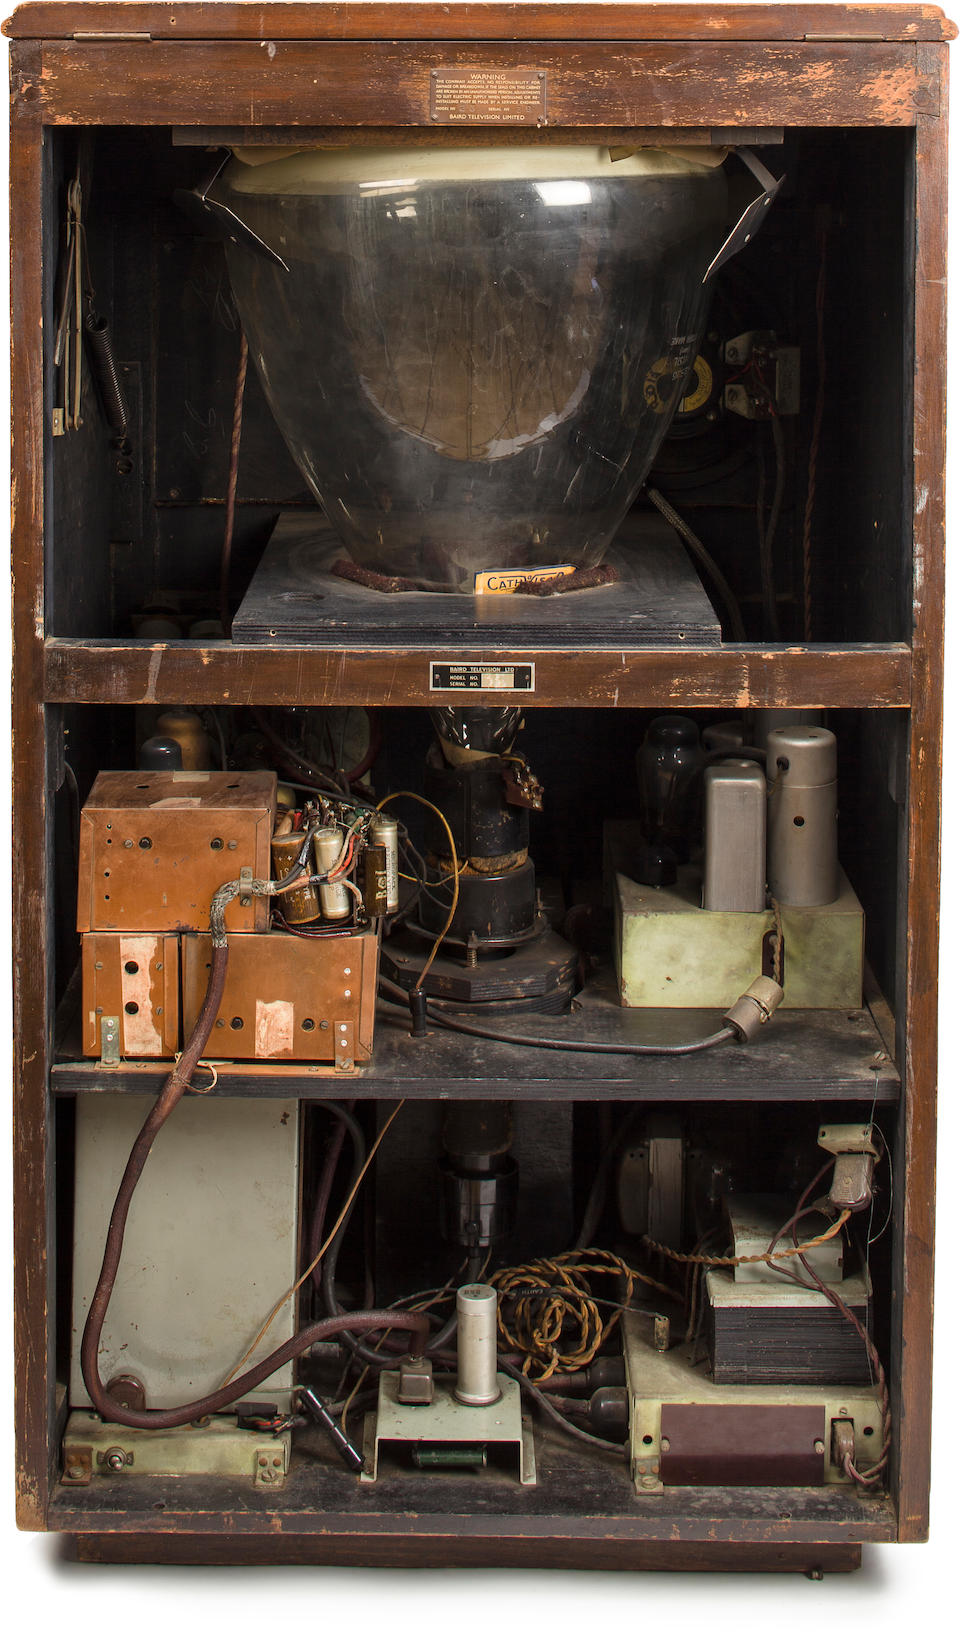 EXTREMELY RARE MIRROR-LID TYPE 23 TELEVISOR TELEVISION RECEIVER, BY BAIRD TELEVISION LTD.